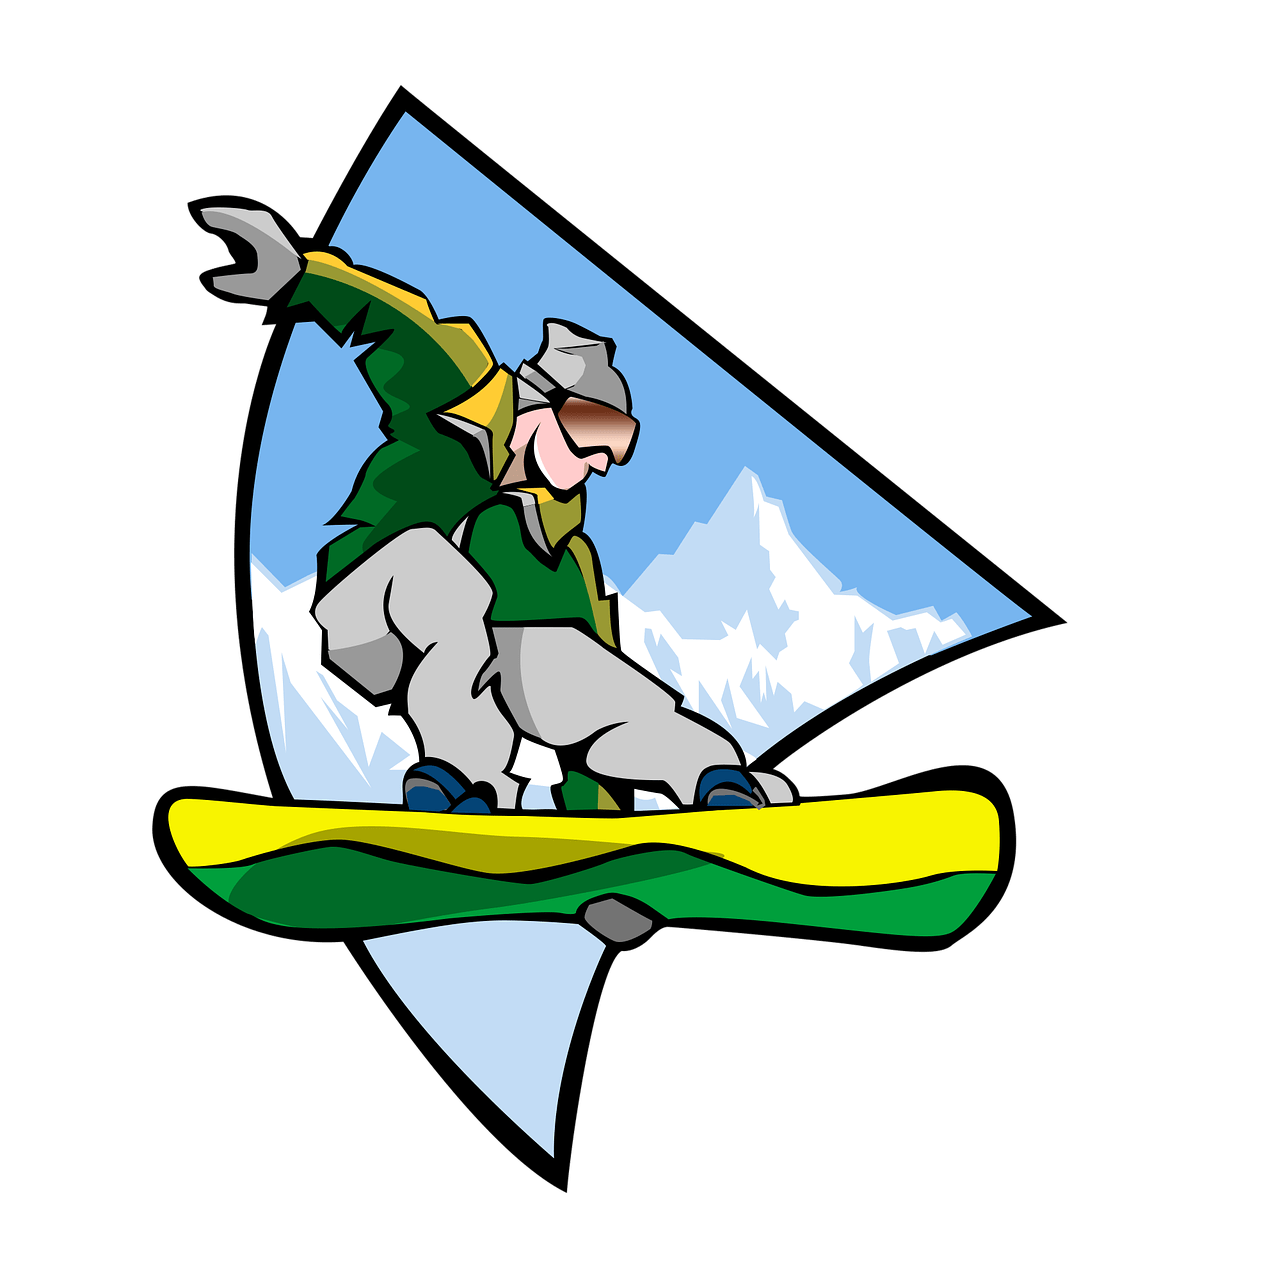 Sports Man Snowboarding Clipart transparent PNG.